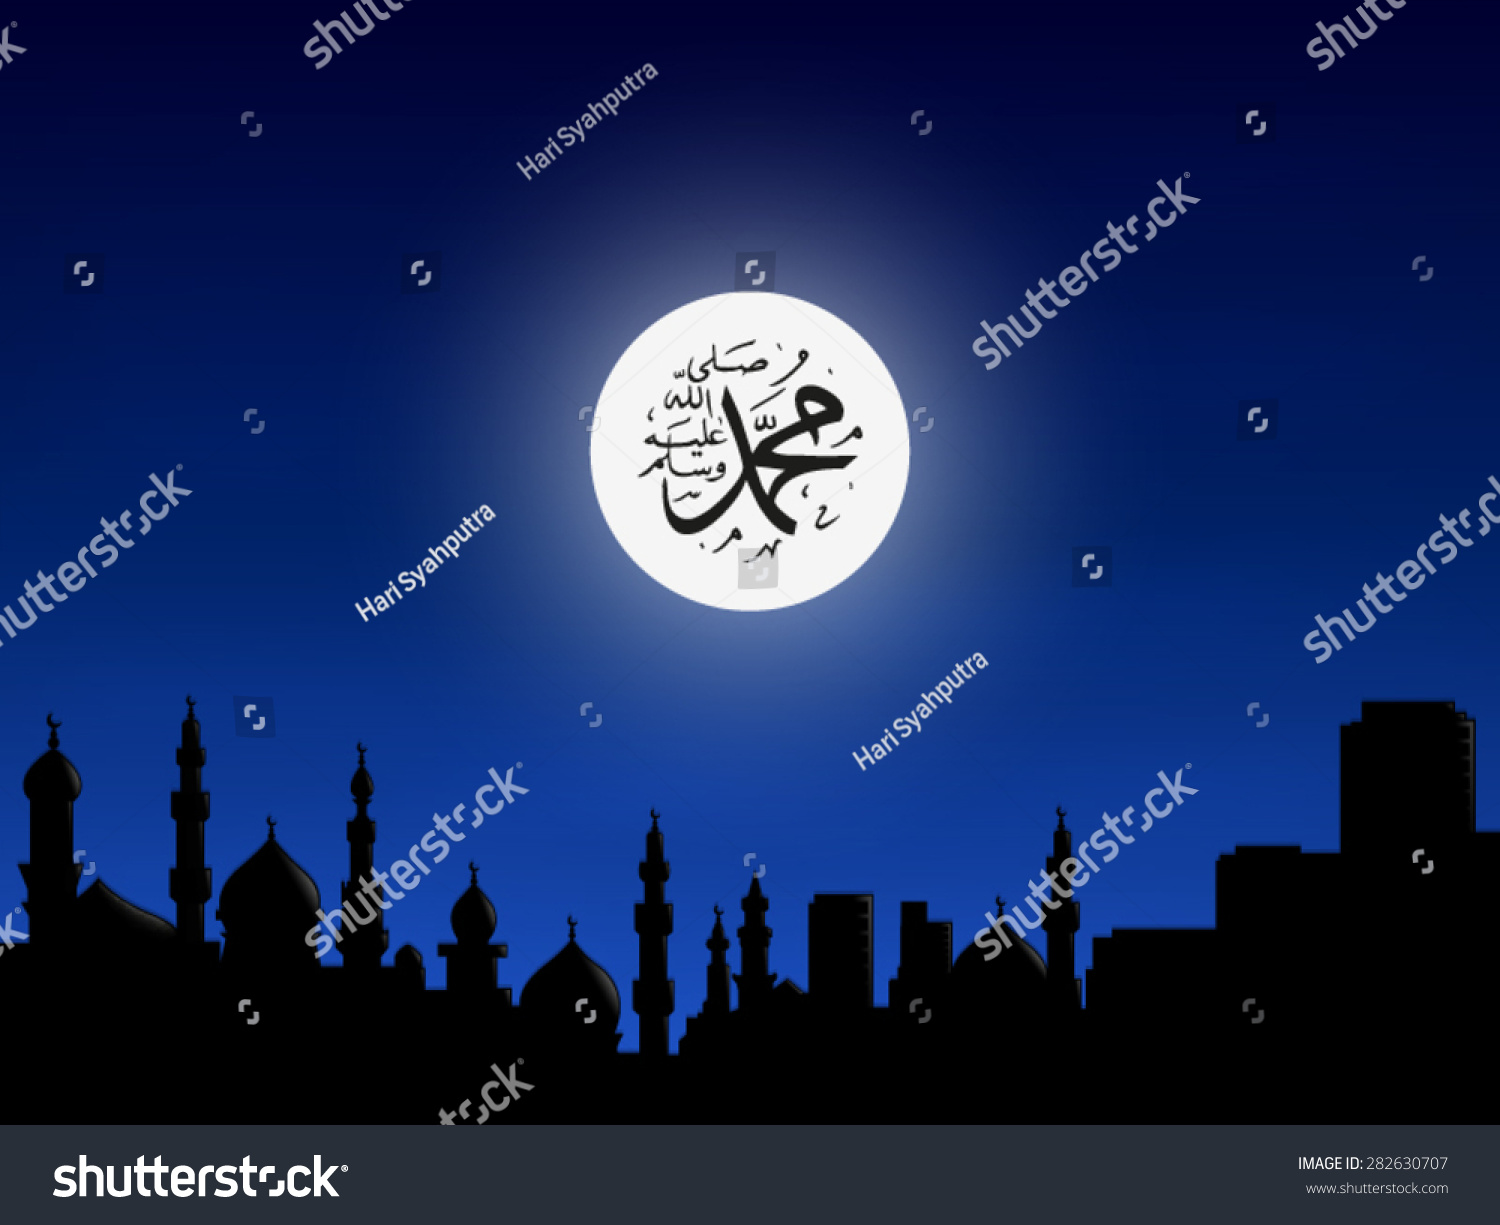 Simple Wallpaper Night God - stock-vector-islamic-wallpaper-abstract-background-template-theme-night-blue-god-mosque-residence-282630707  Graphic-24970.jpg